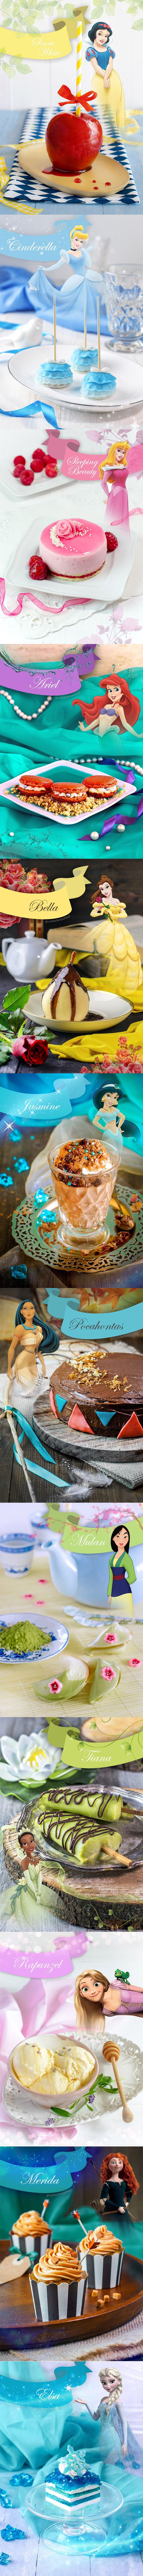 Desserts inspired by Disney Princesses - hope you like it! - www.viralpx.com